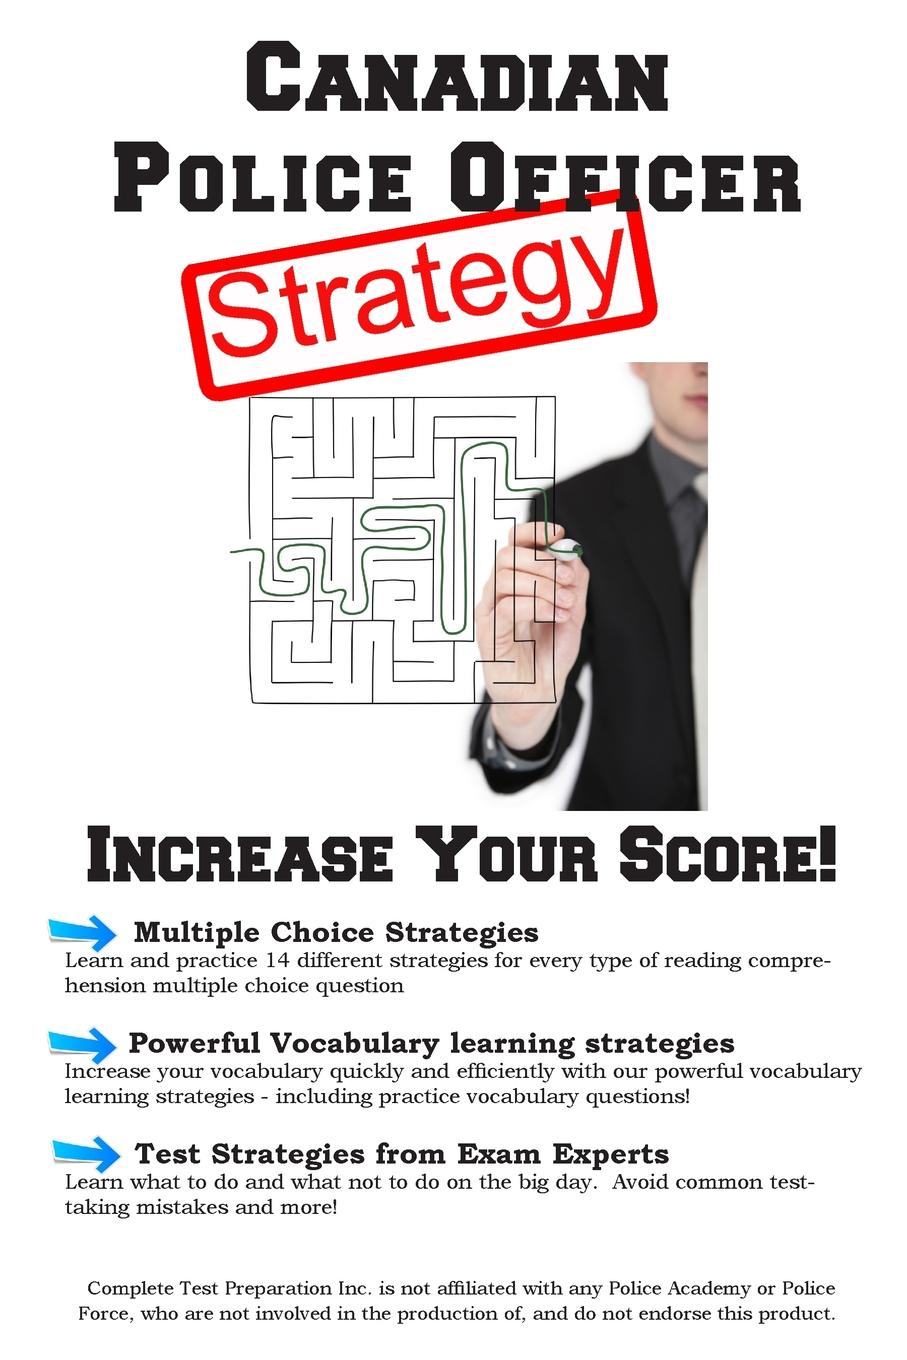 Complete Test Preparation Inc. Canadian Police Officer Test Strategy. Winning Multiple Choice Strategies for the Canadian Police Officer Test